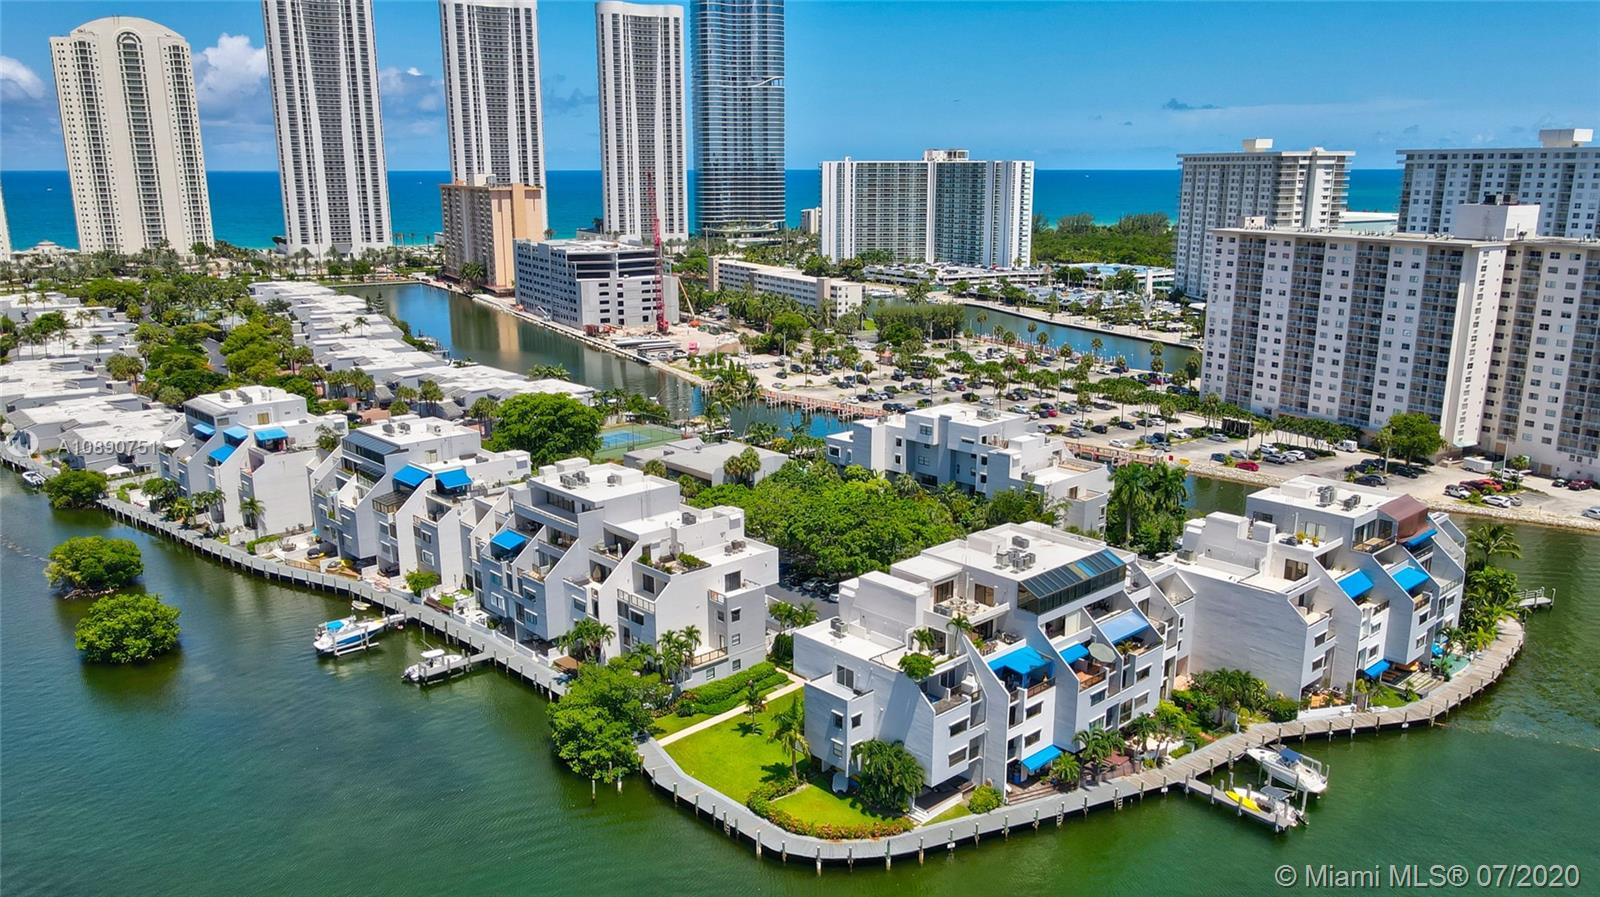 Photo of 425 Poinciana Island Drive #1444, Sunny Isles Beach, Florida, 33160 - Boardwalk wraps and around the complex and is scattered with boat docks